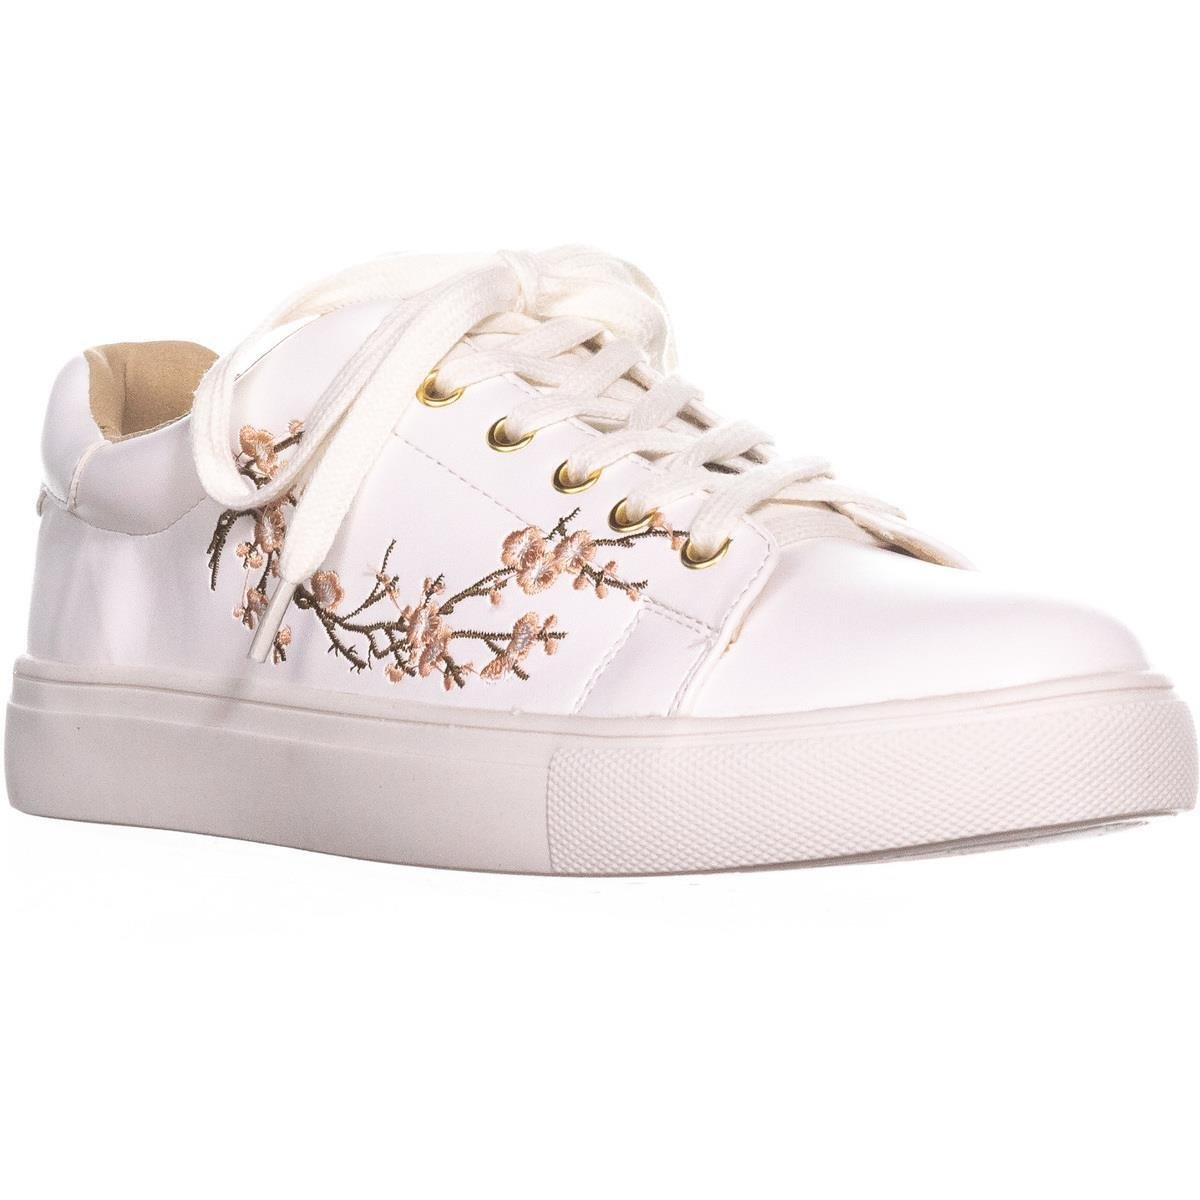 20808bd54744d6 Nanette Lepore Womens Winona Low Top Lace Up Fashion Sneakers